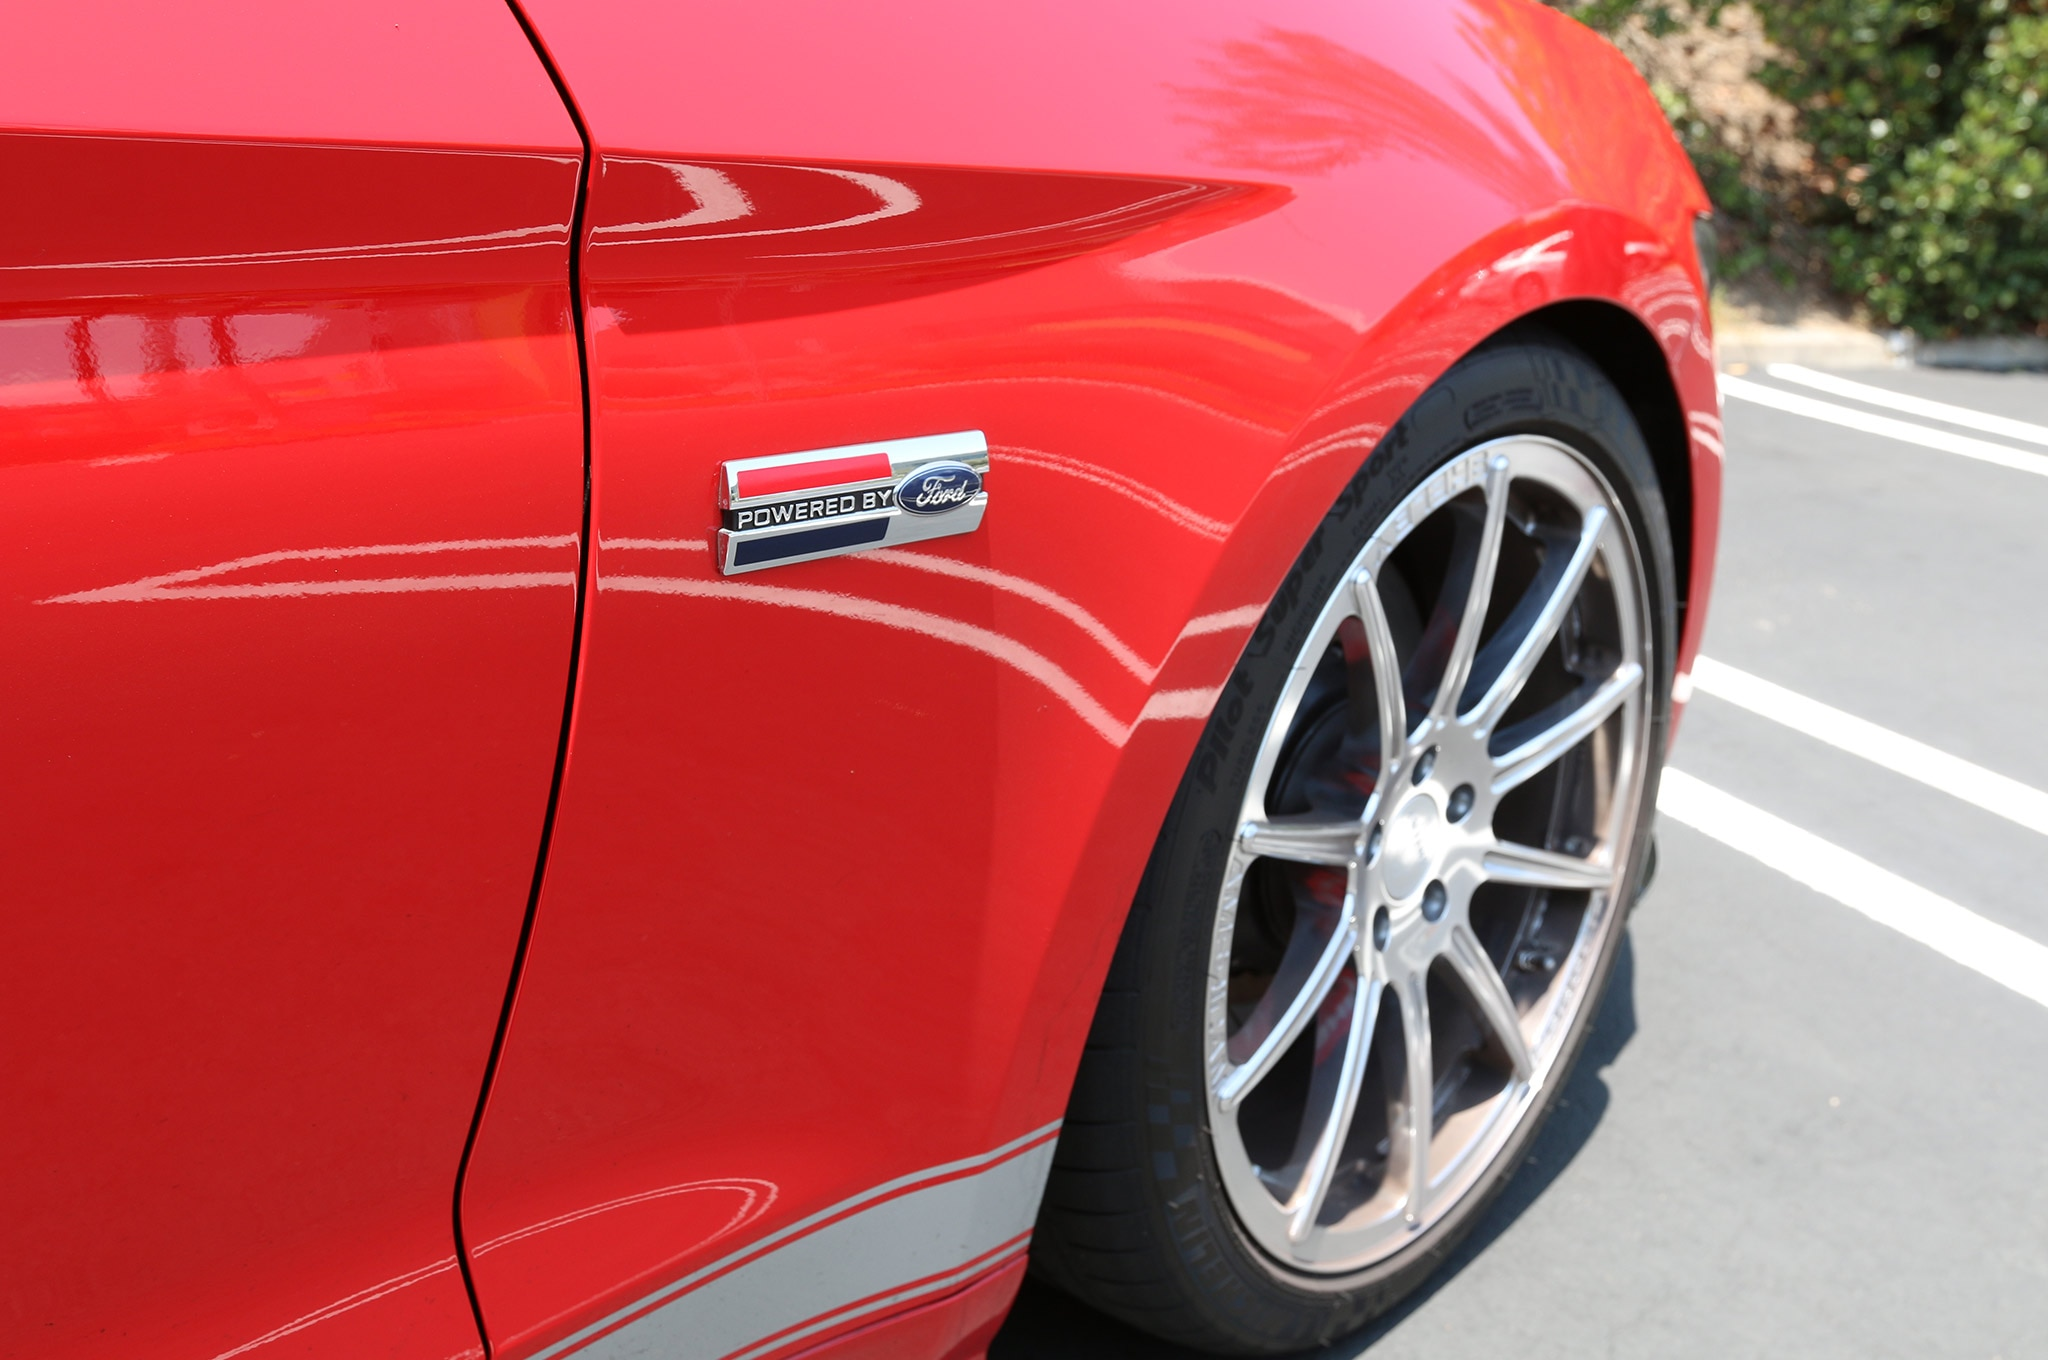 2015 Shelby GT Mustang 18 Weld Racing Shelby Forged Aluminum 20 Inch Wheel